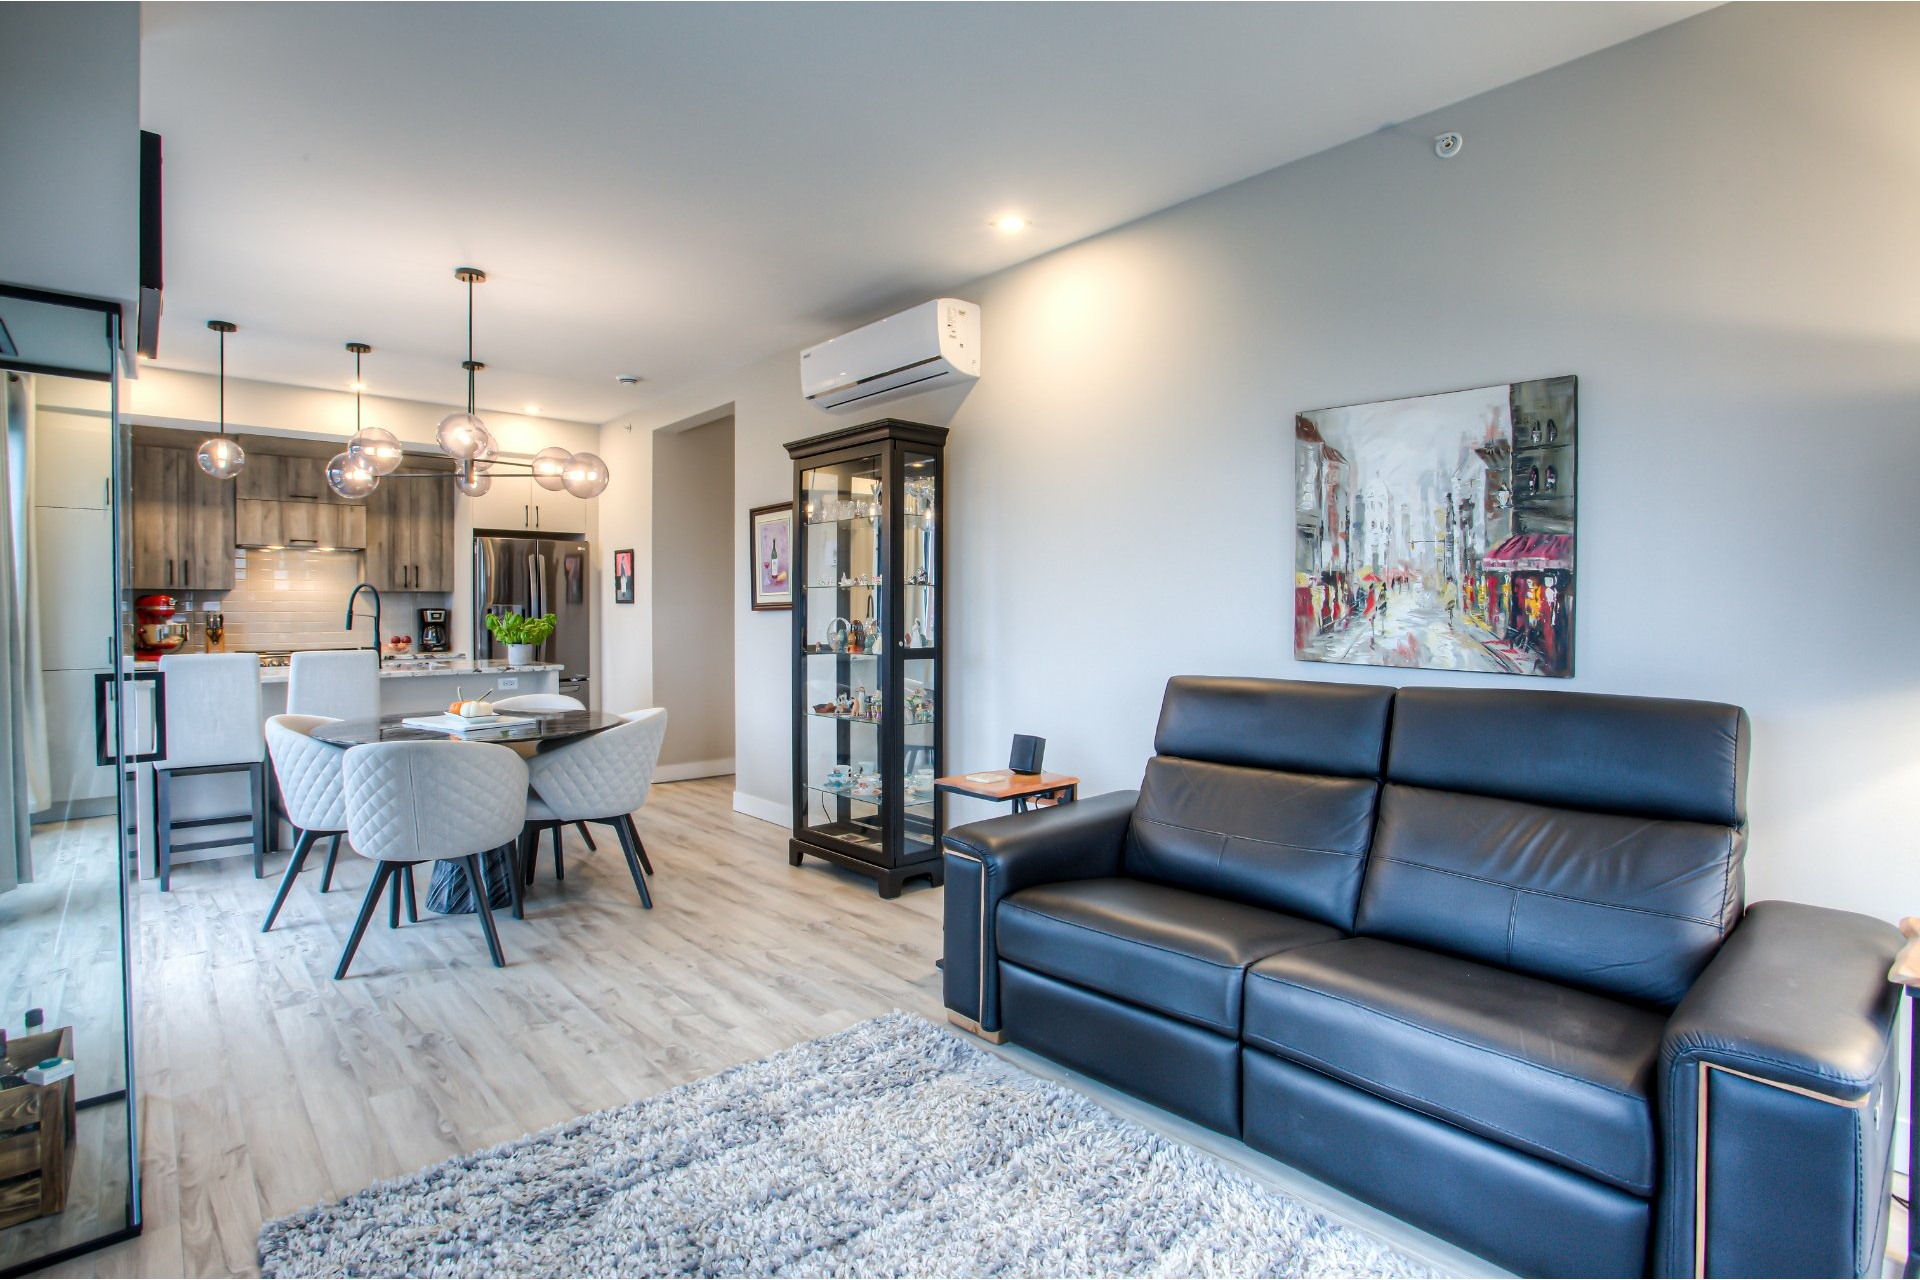 image 3 - Apartment For sale Vaudreuil-Dorion - 7 rooms